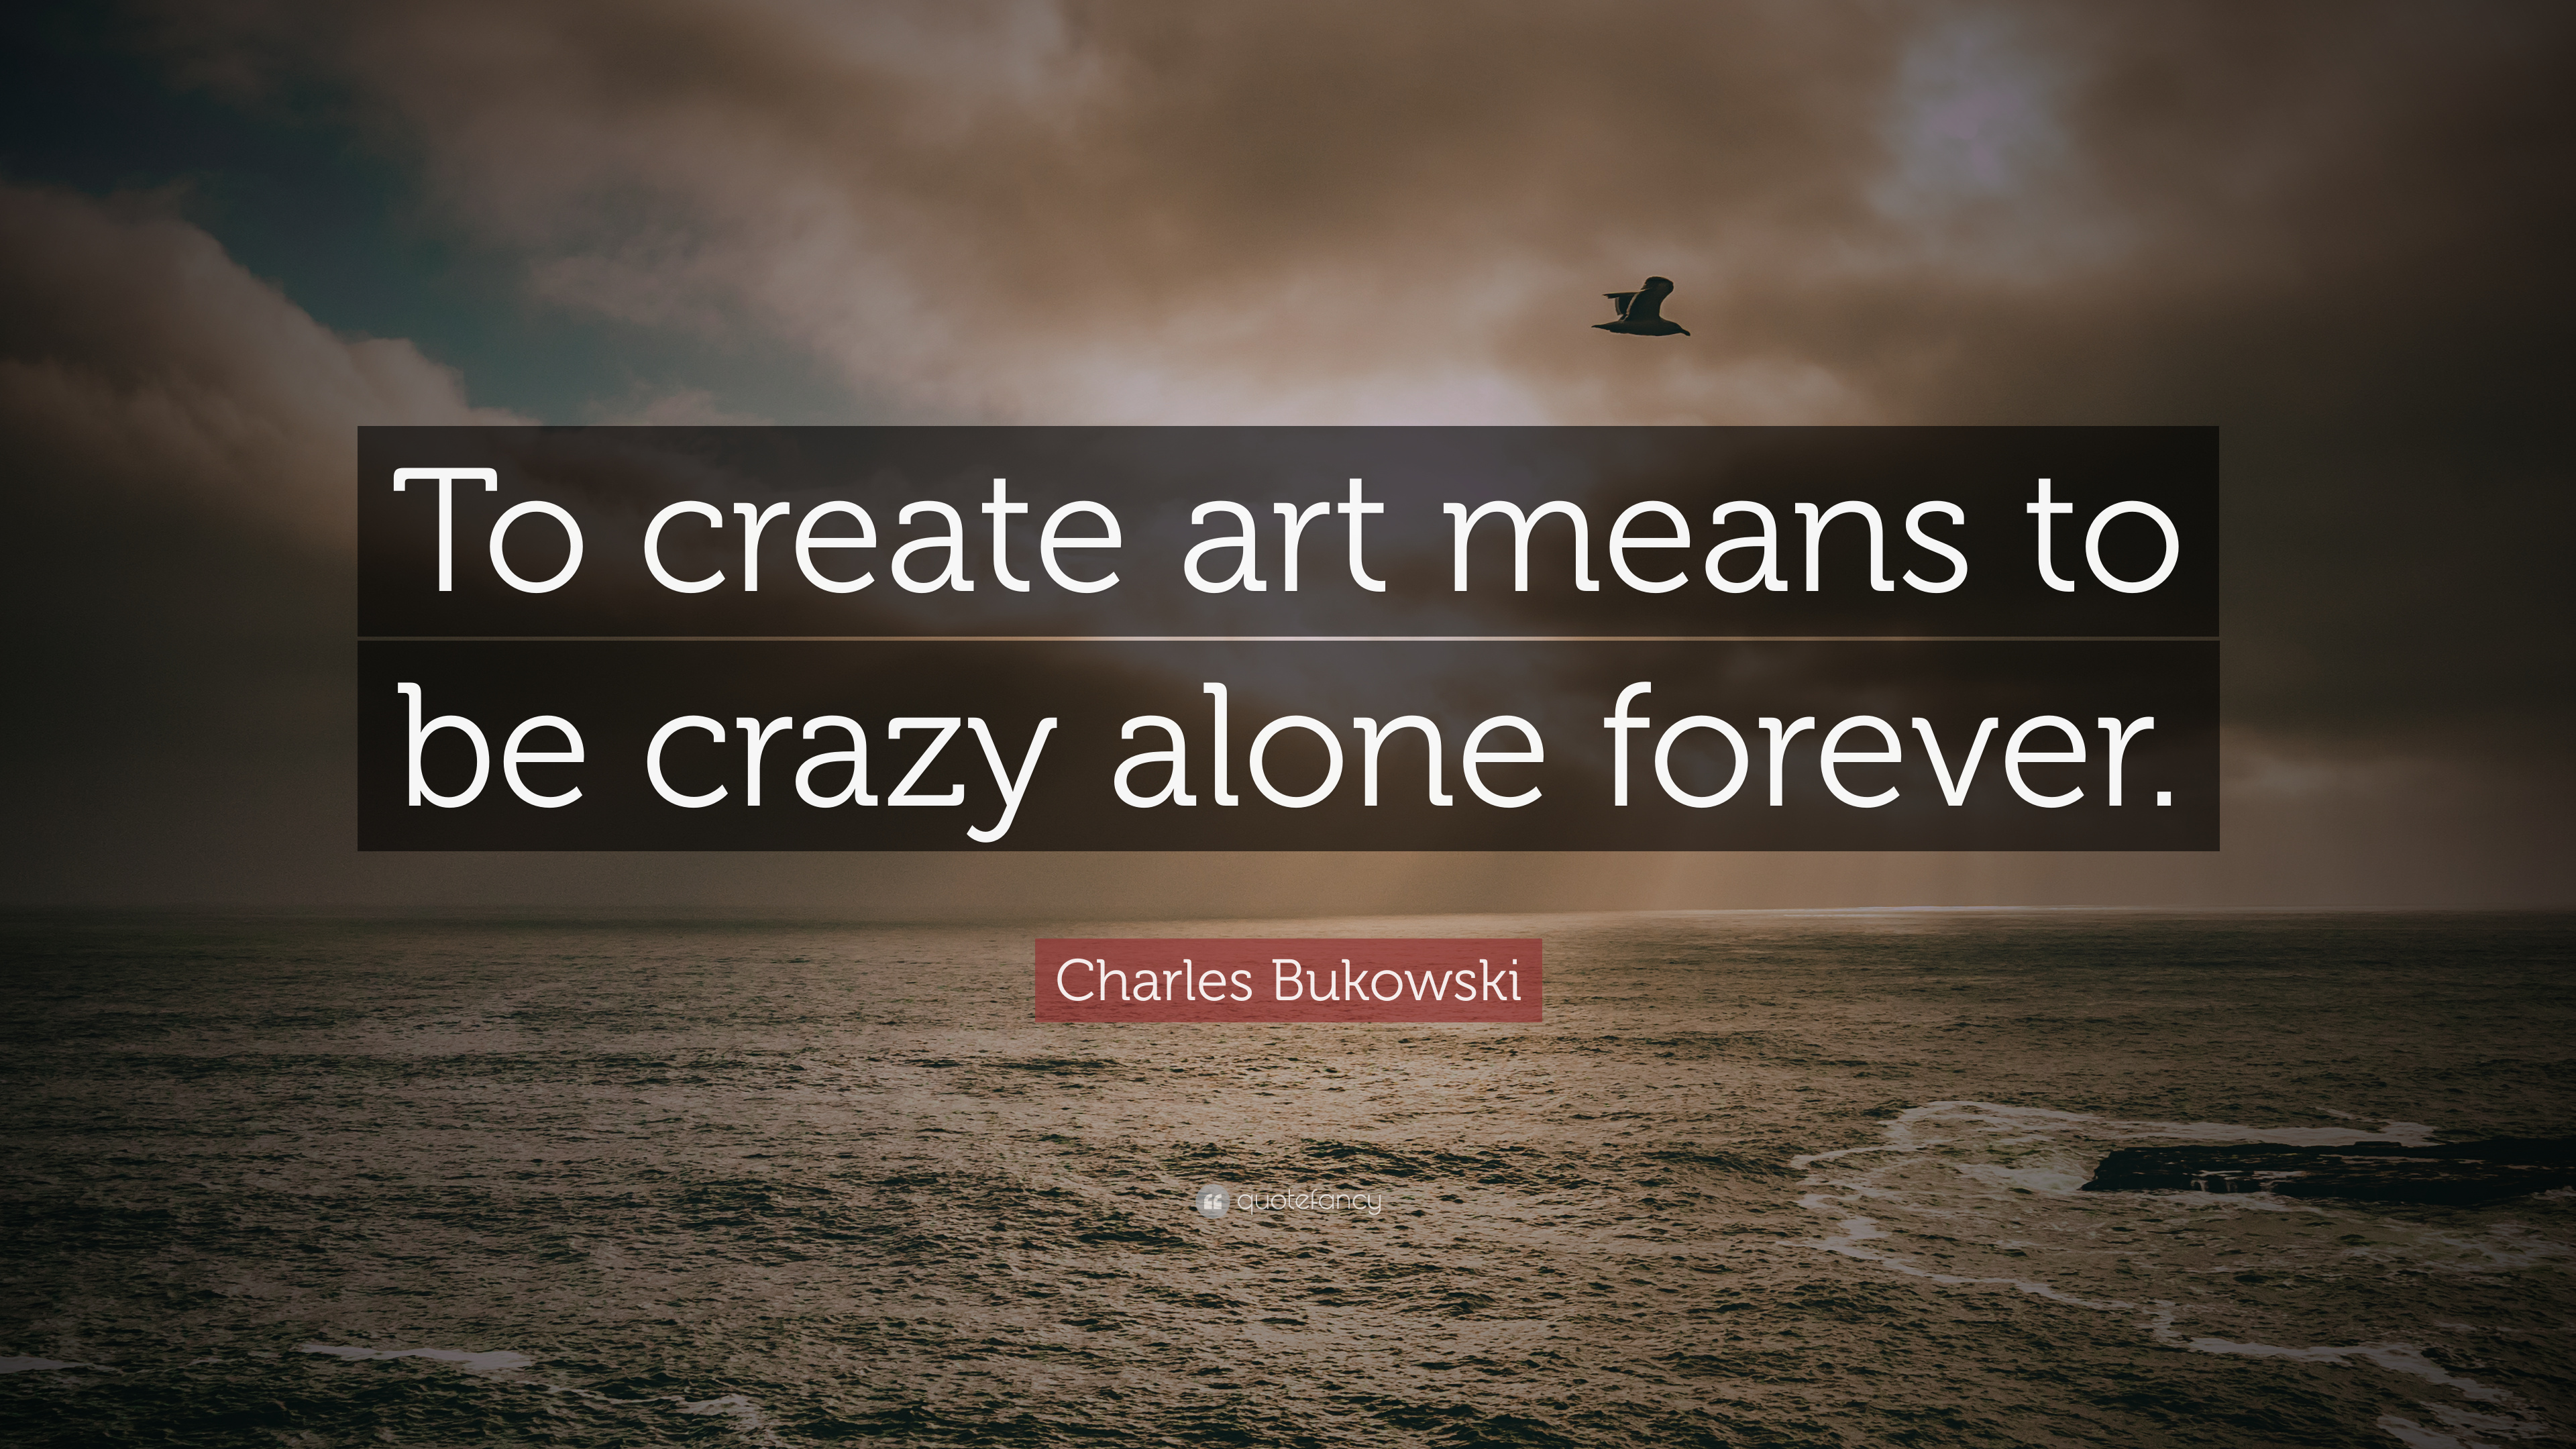 charles bukowski quote to create art means to be crazy alone